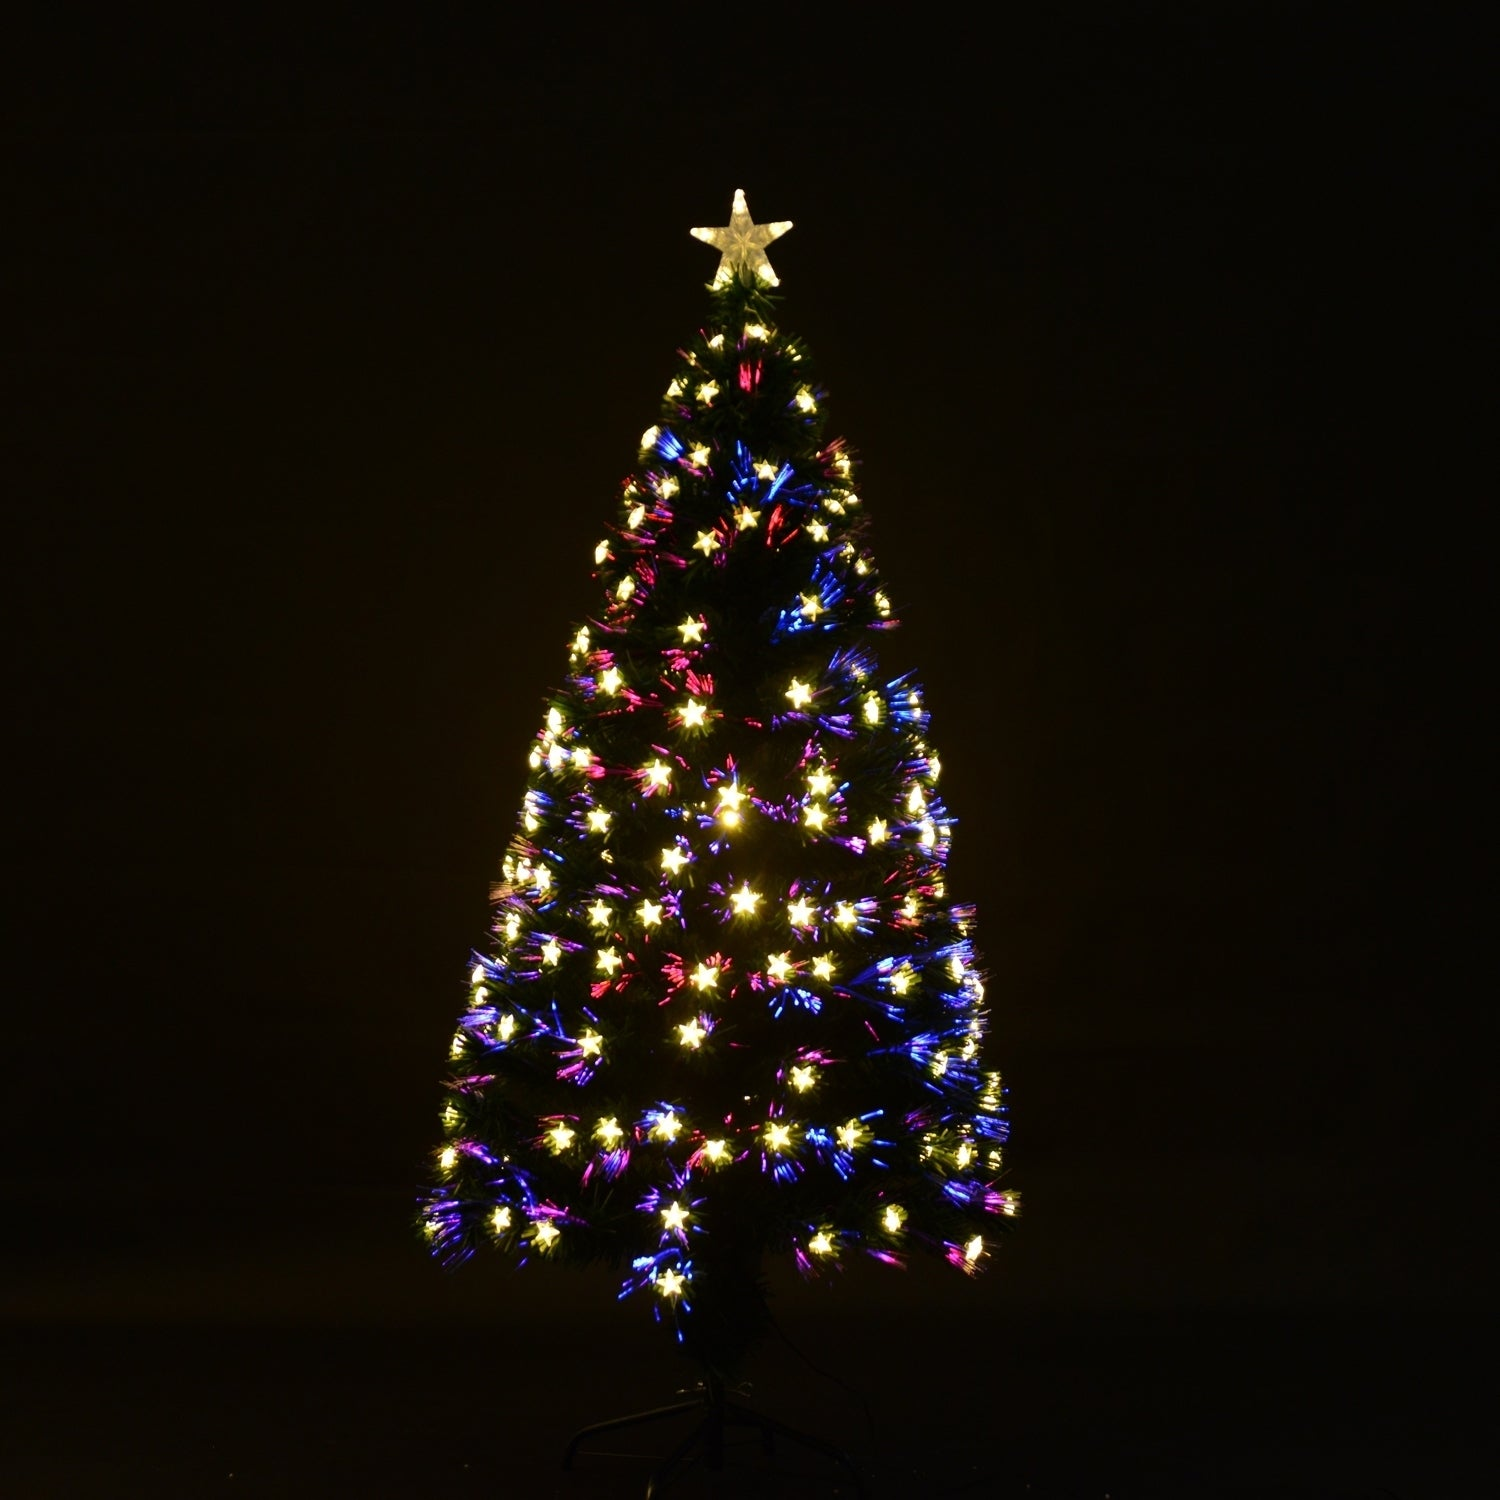 Pre Lit Rotating Christmas Tree.Homcom 7 5 Artificial Rotating Pre Lit Multicolor Star Led Christmas Tree With Stand